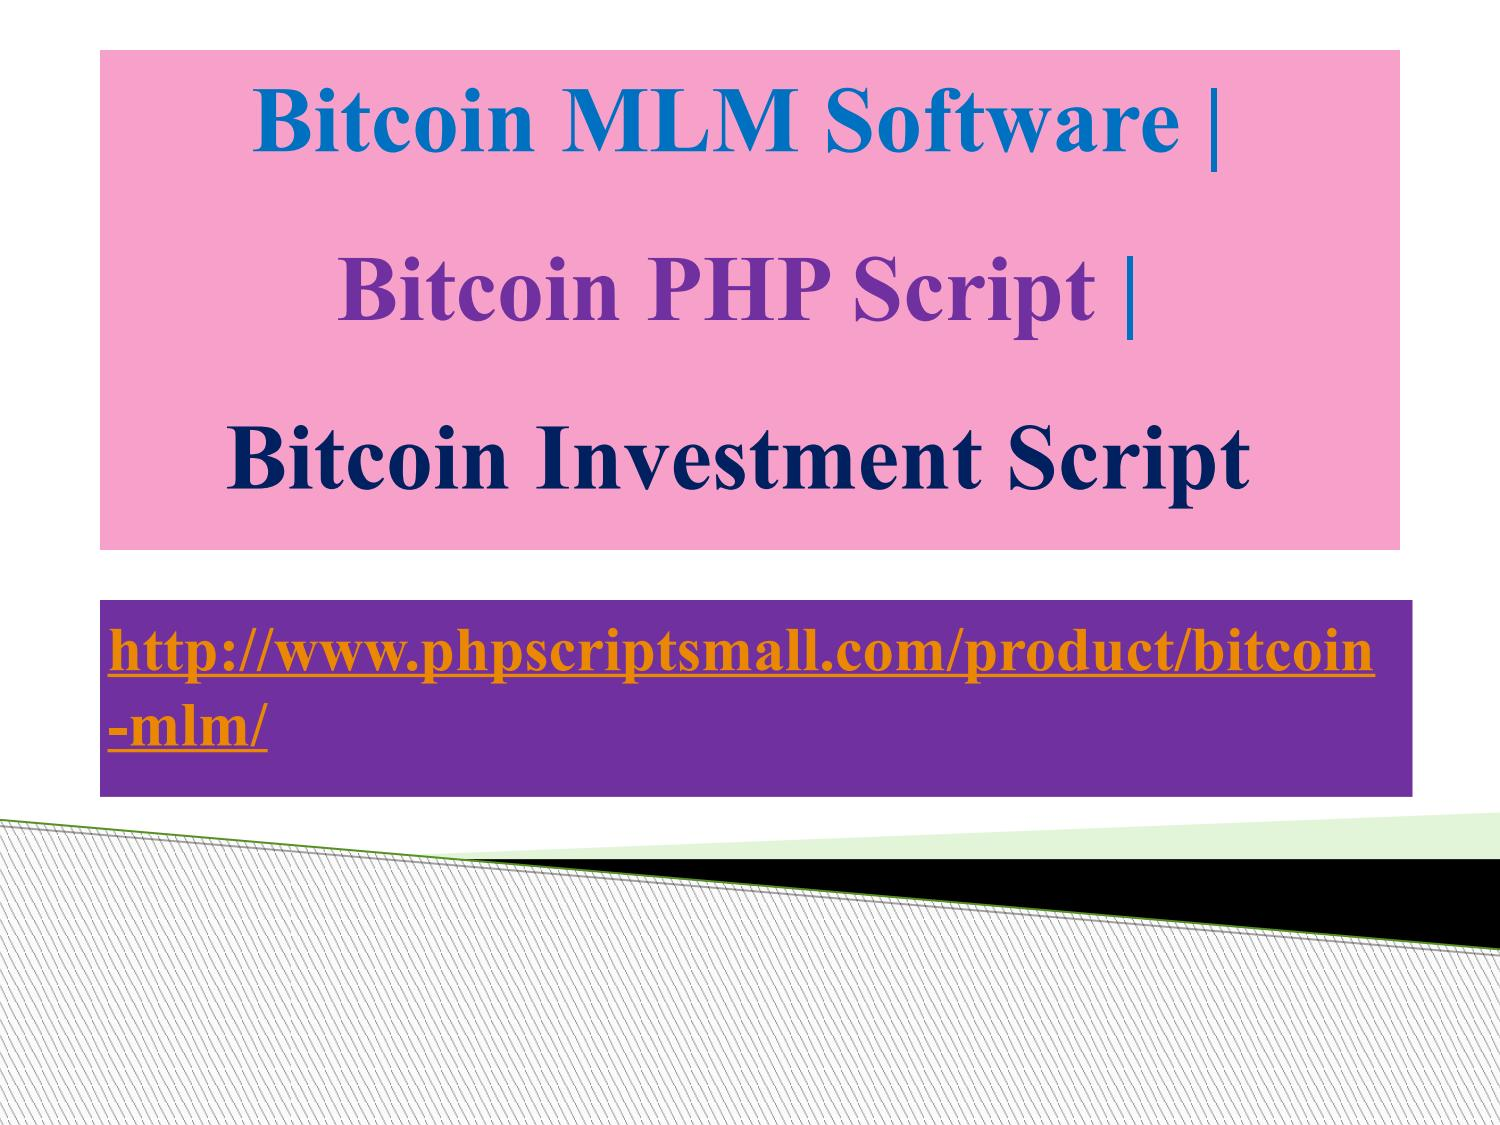 Bitcoin investment script php